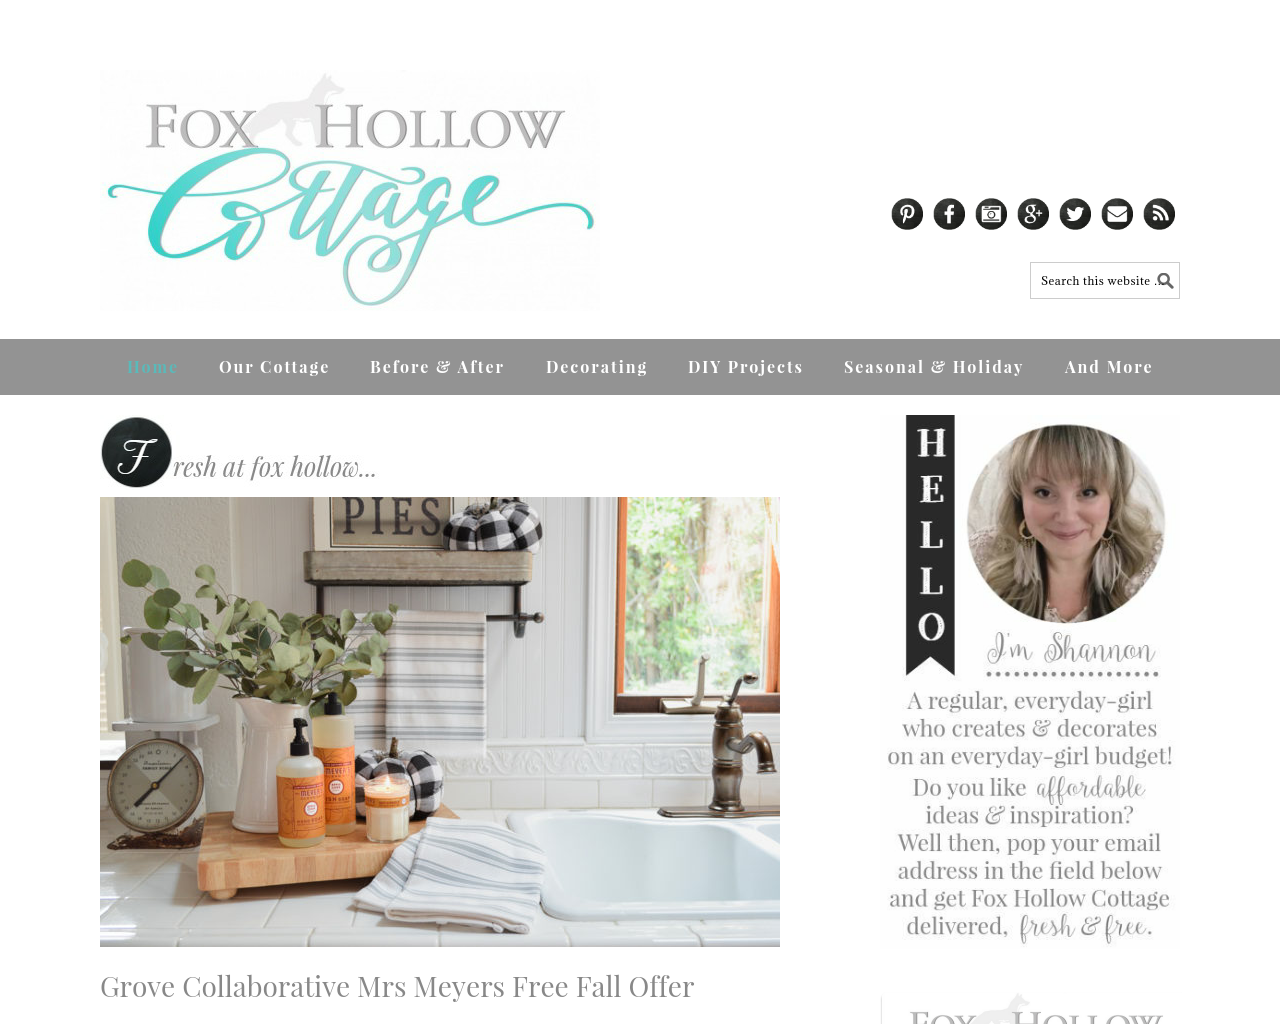 Fox-Hollow-Cottage-Advertising-Reviews-Pricing